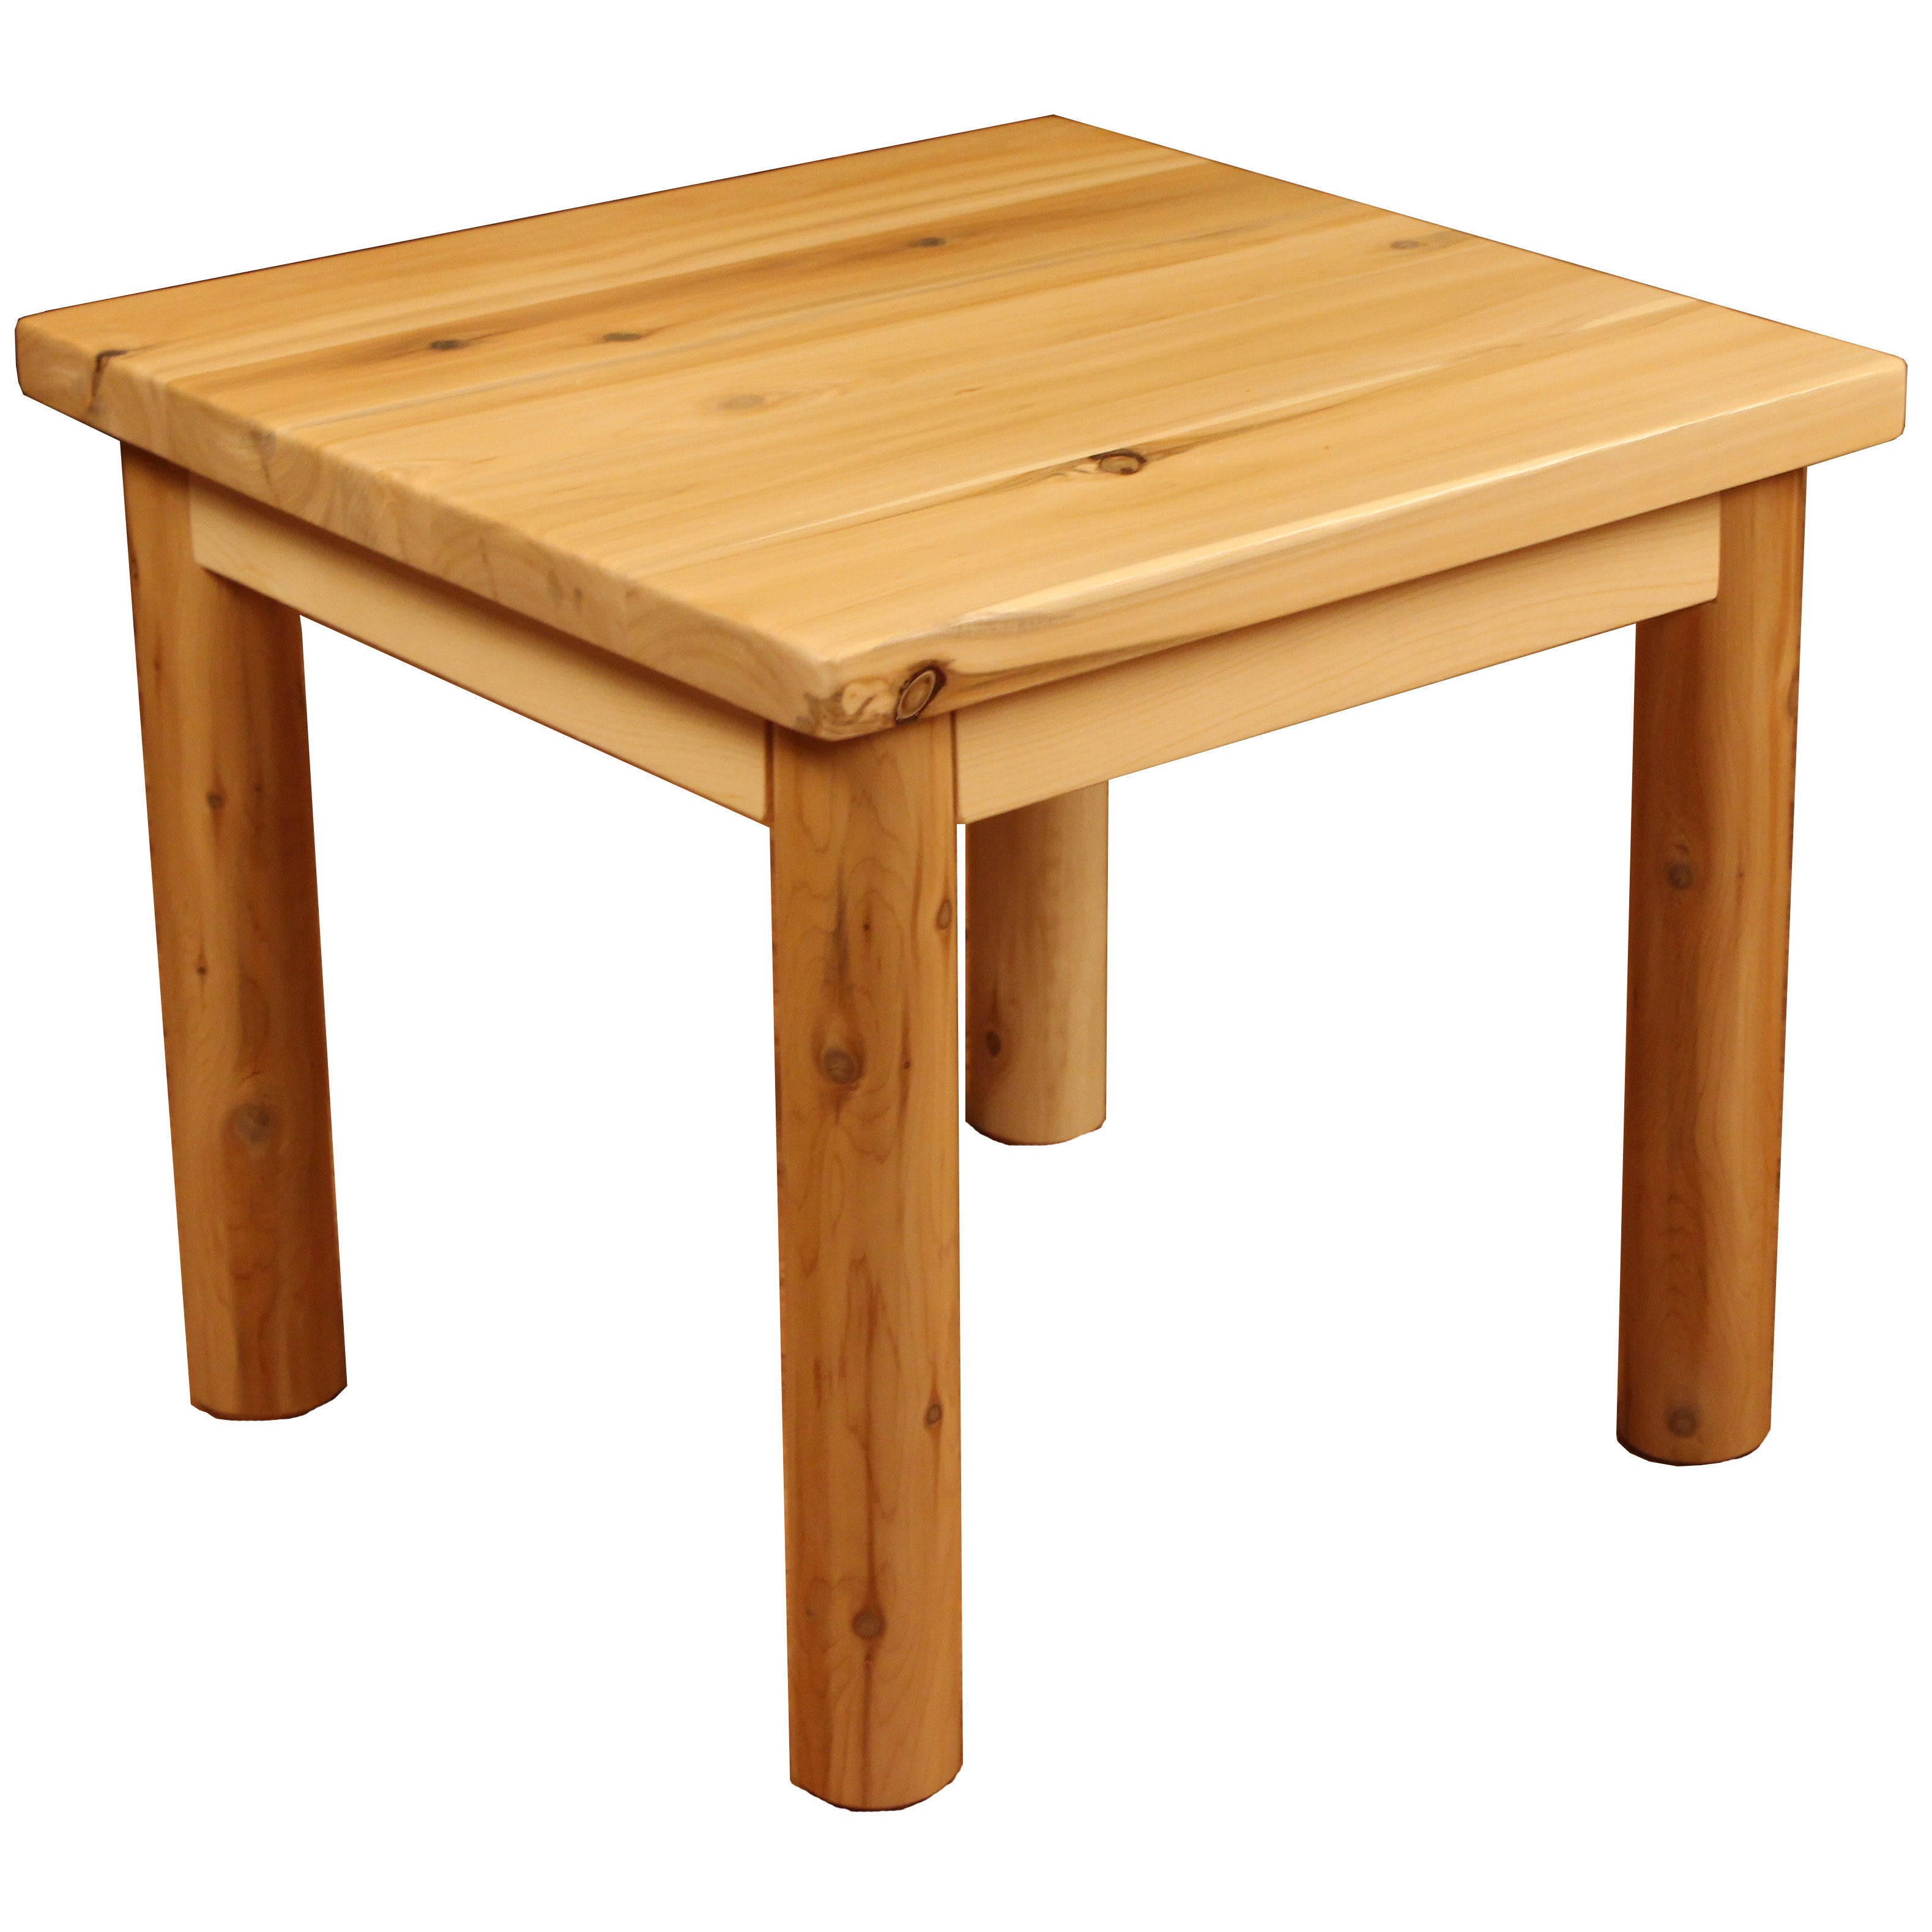 Yosemite Rustic White Cedar Log Lodge Style Solid Wood Table Free Shipping Today 9362116